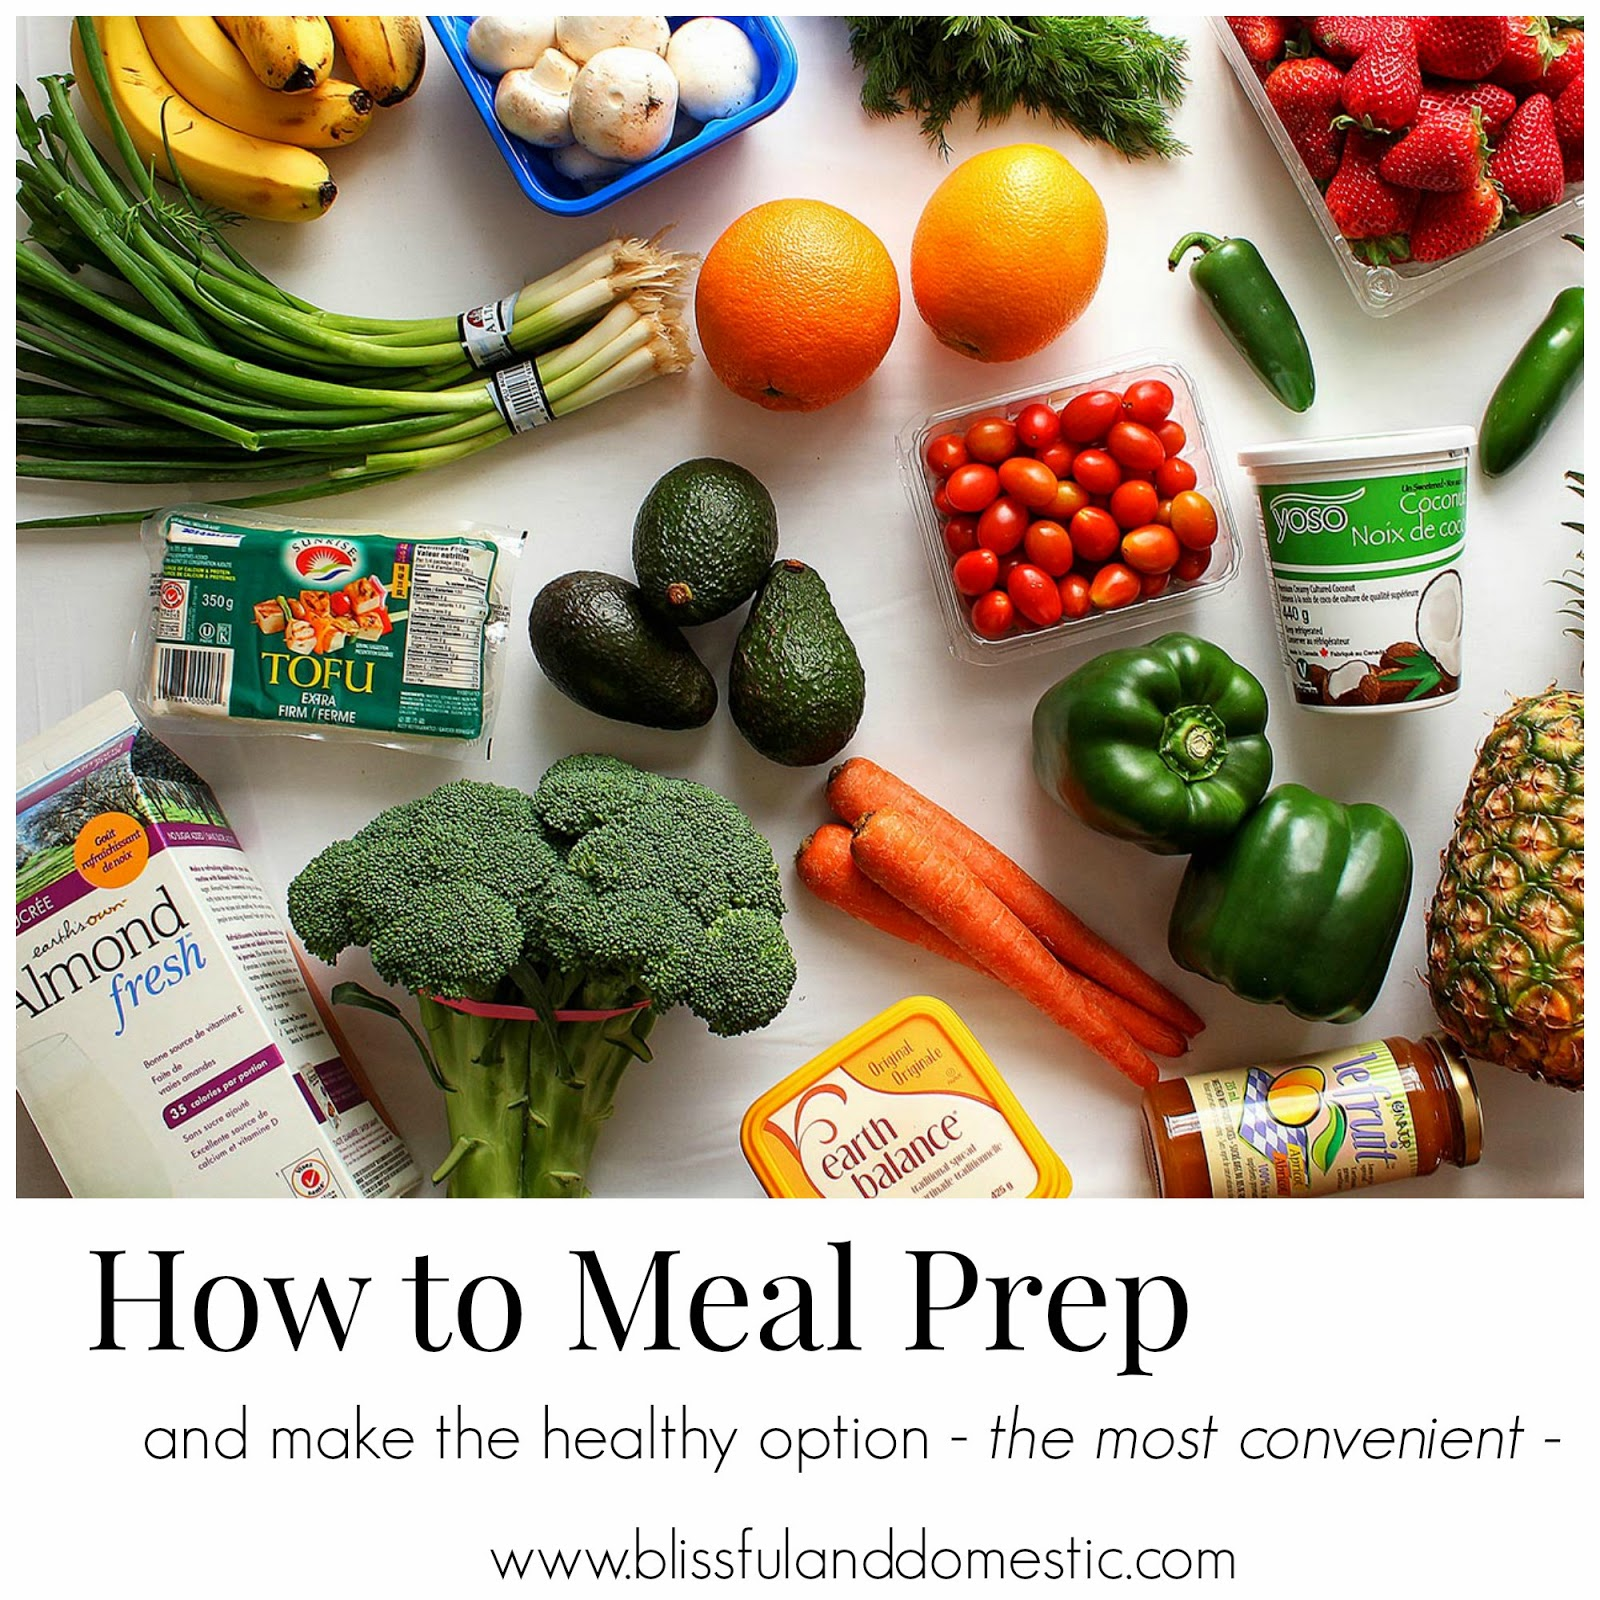 Meal Prep Monday: How to Meal Prep for Your Week...